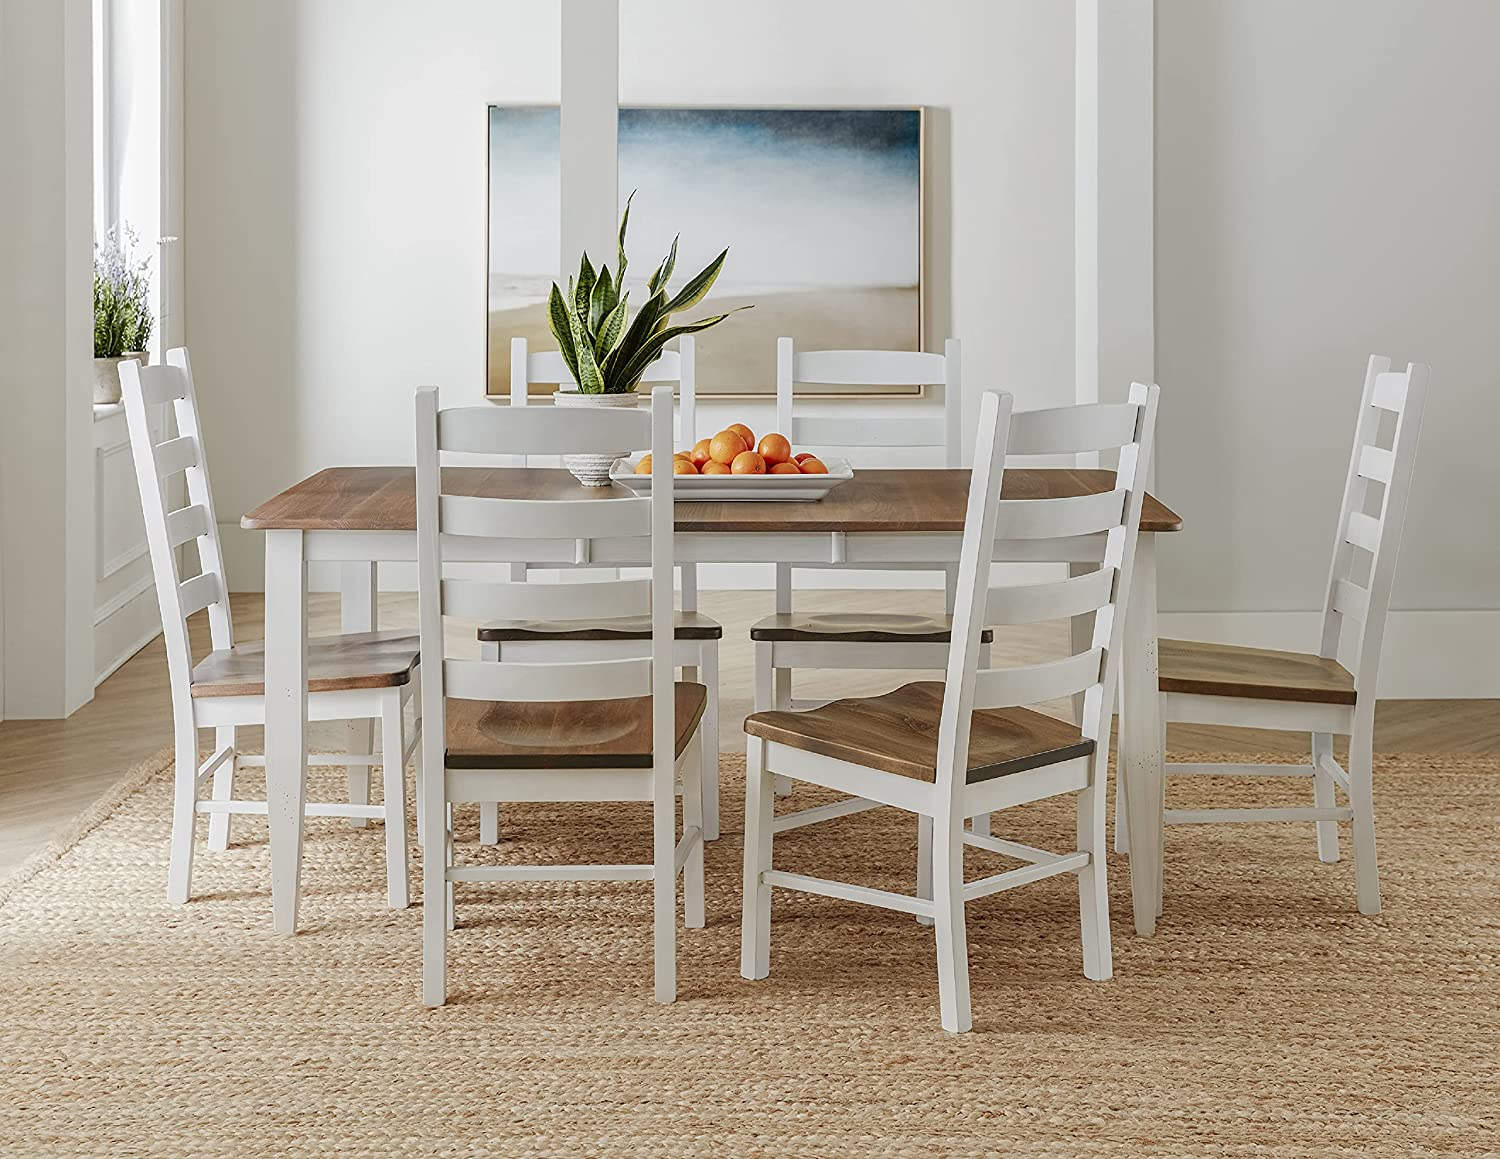 7 Piece Solid Wood Dining Room Sales for sale Set Kitchen Extendable wi Table 4 years warranty